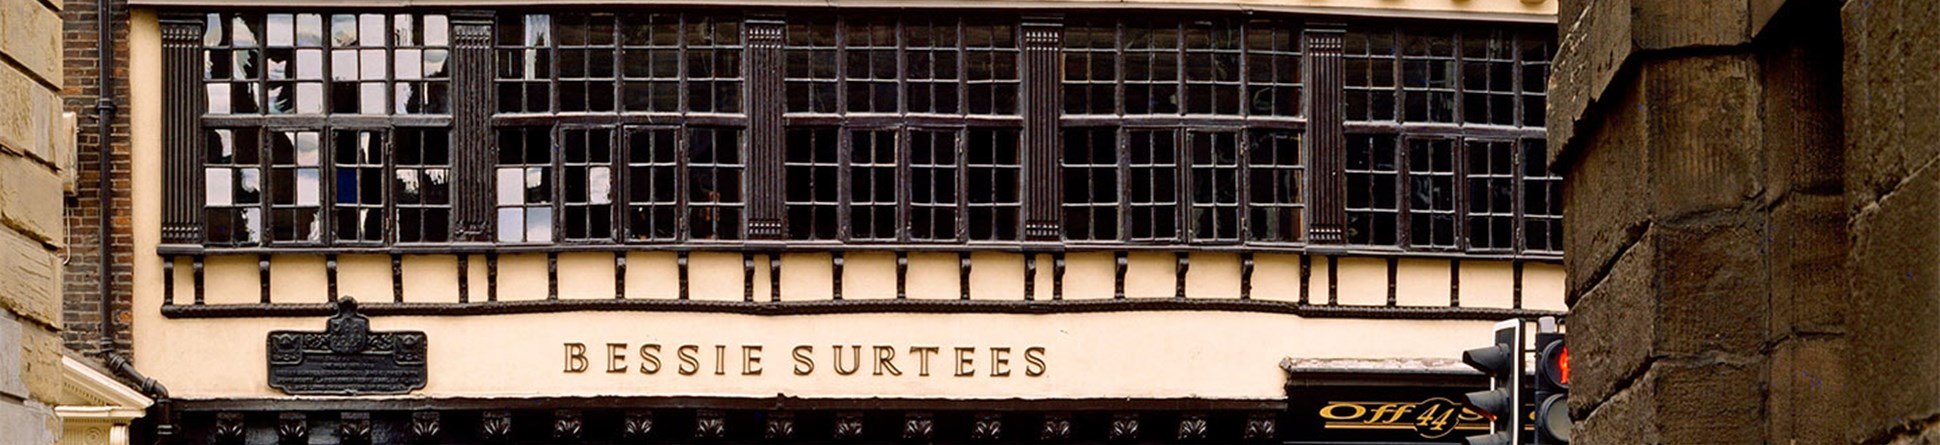 Exterior view of Bessie Surtees House from Watergate lane